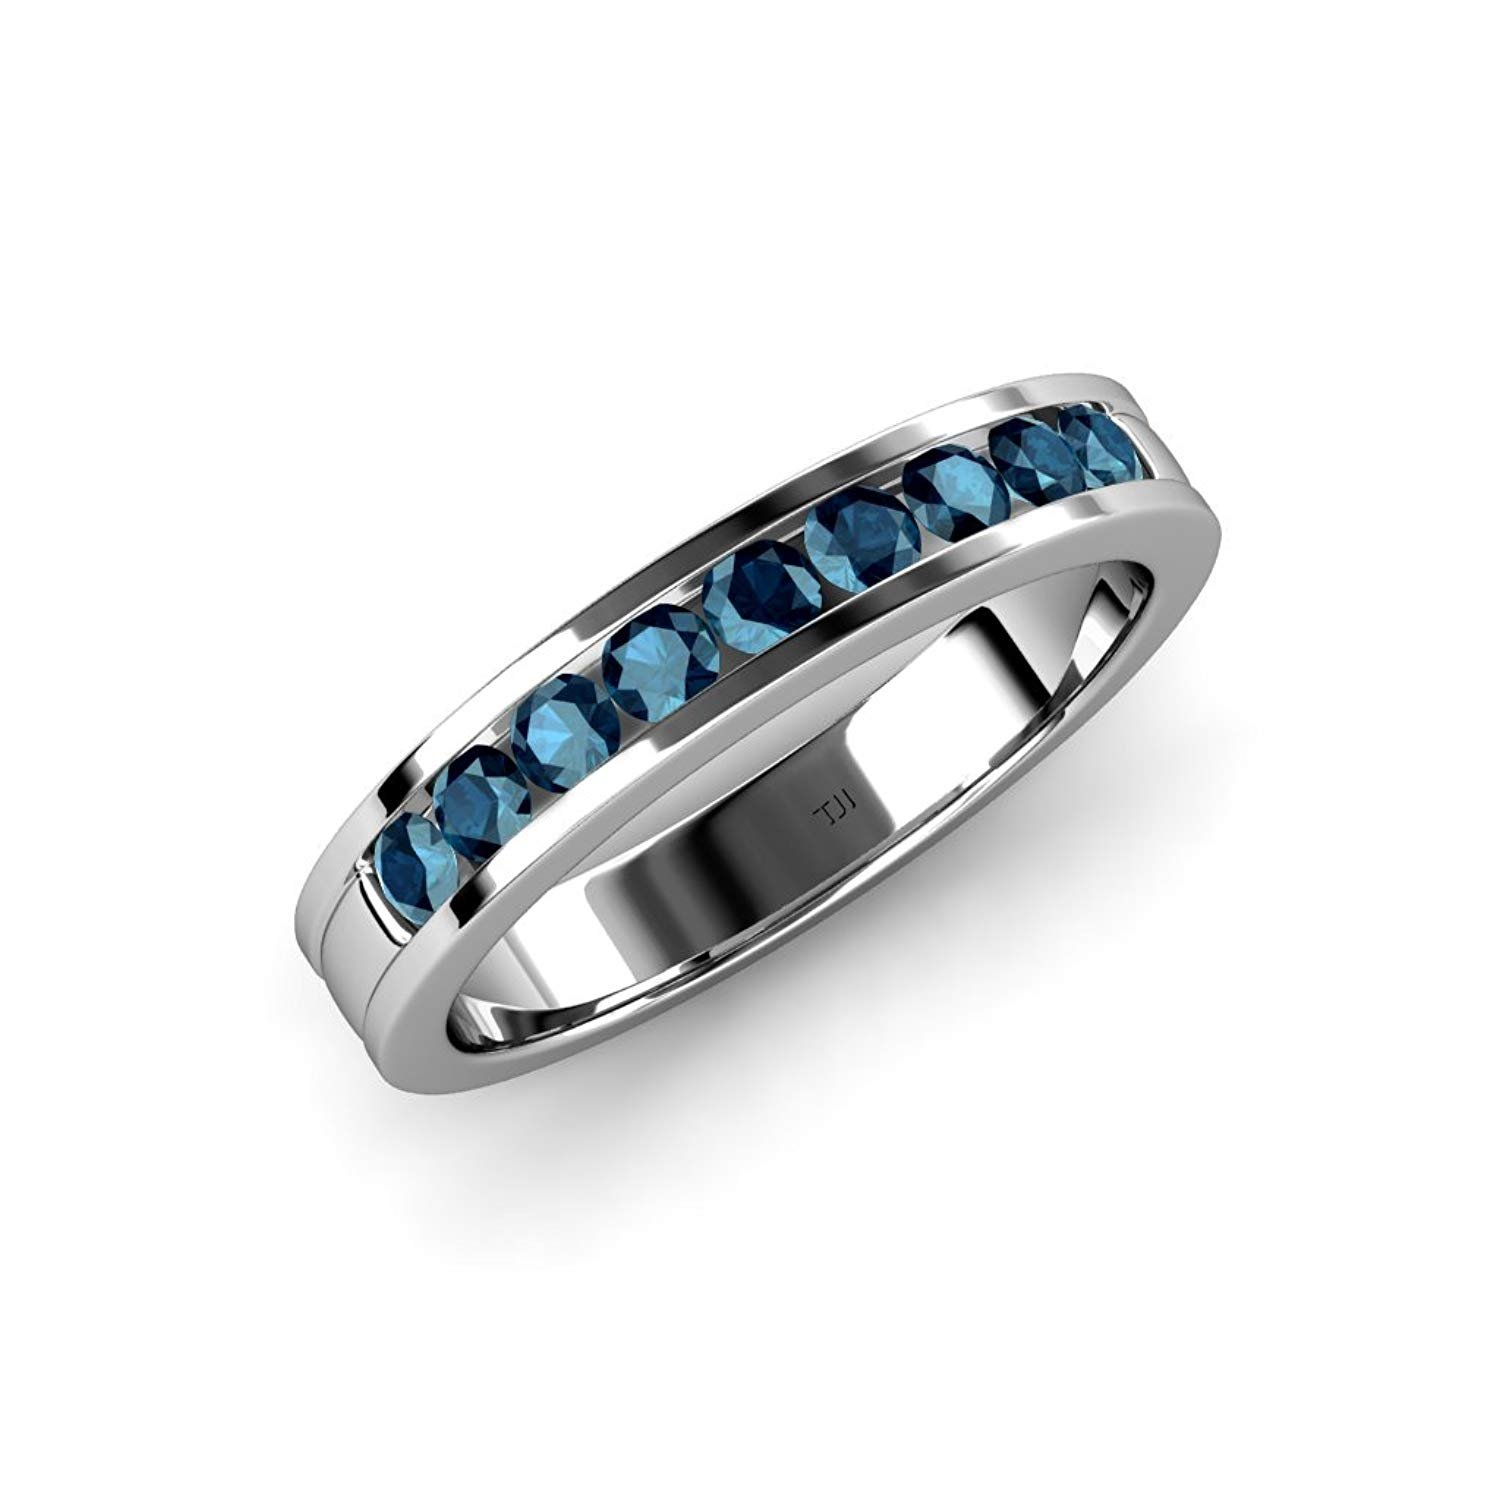 Blue Diamond 2.2mm 9 Stone Channel Set Wedding Band 0.36 Carat tw in 14K White Gold.size 5.5 by TriJewels